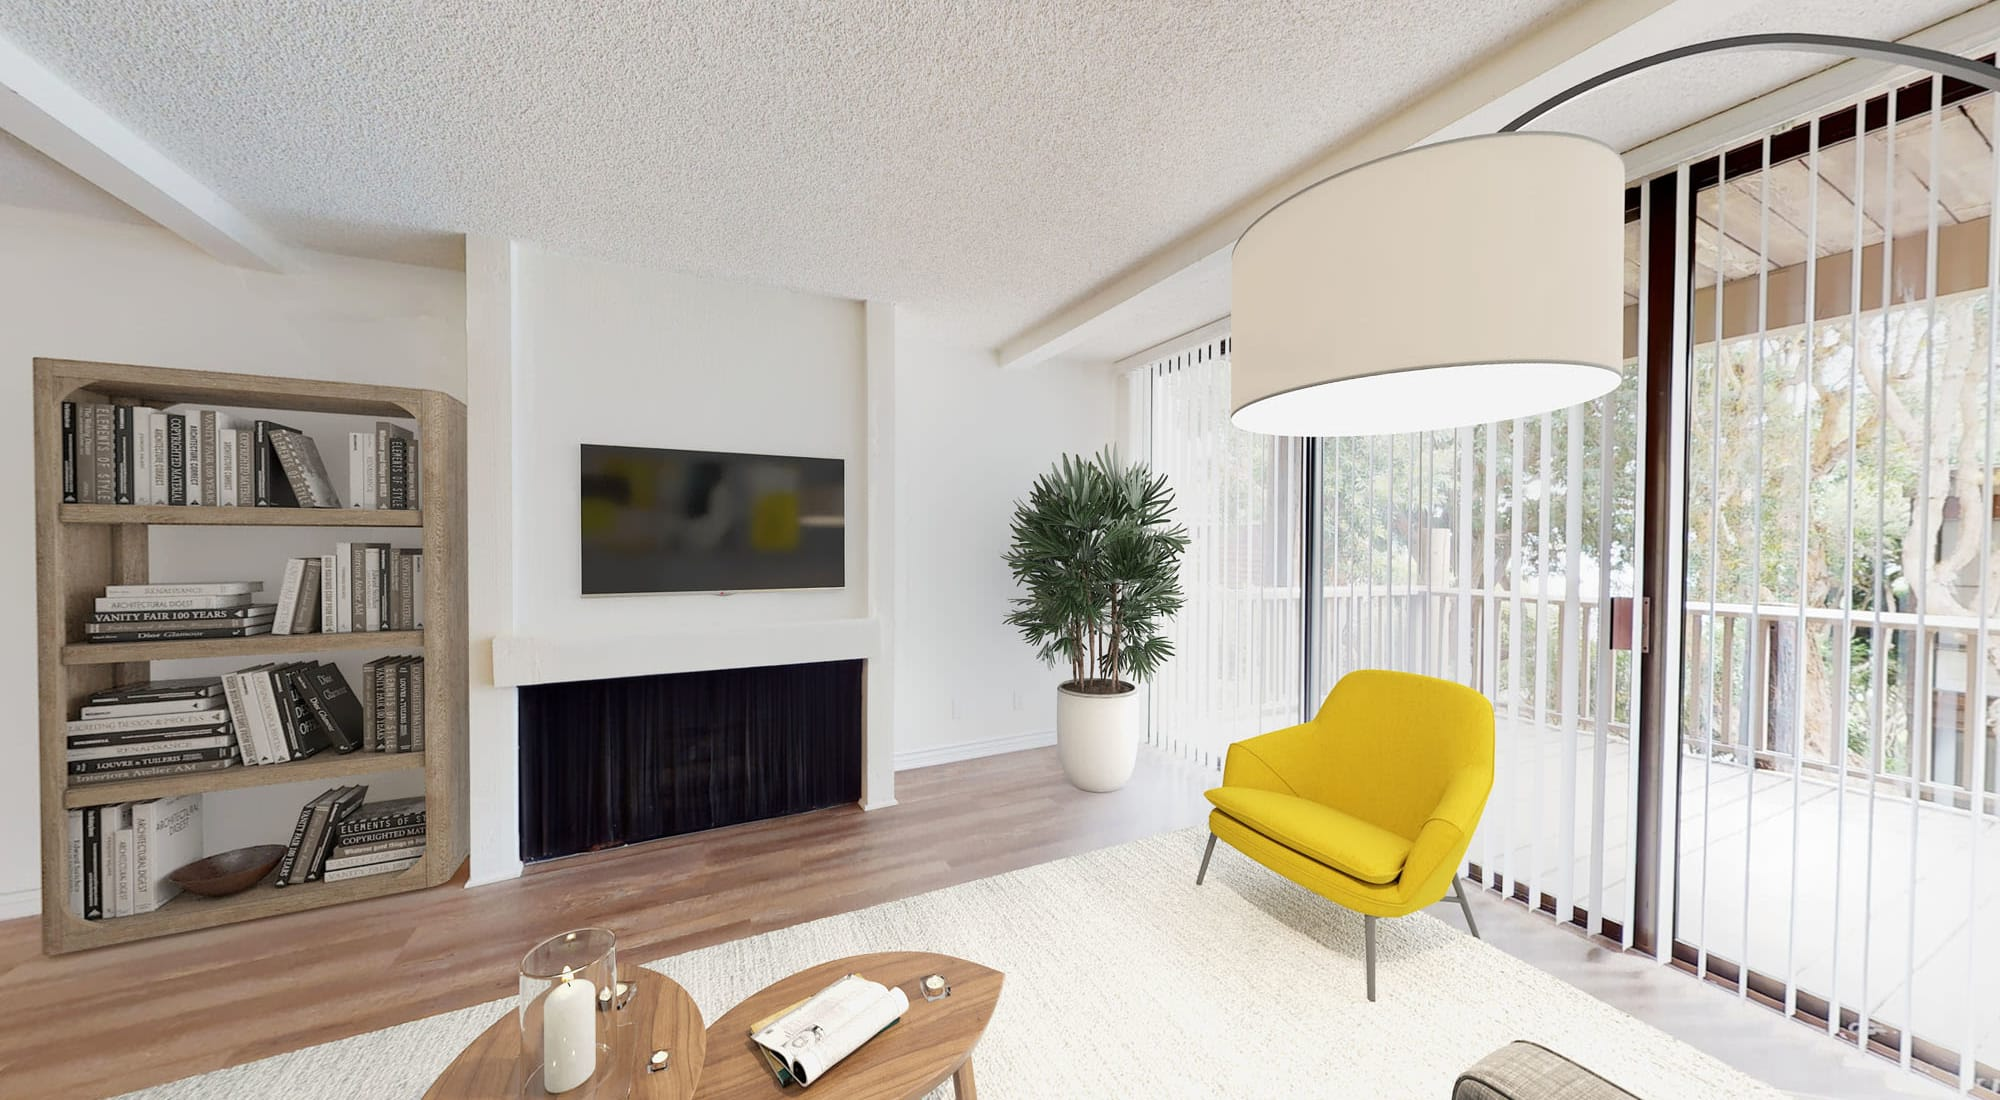 Built-in bookshelves and ample natural light filling a model home's living area at Mariners Village in Marina del Rey, California